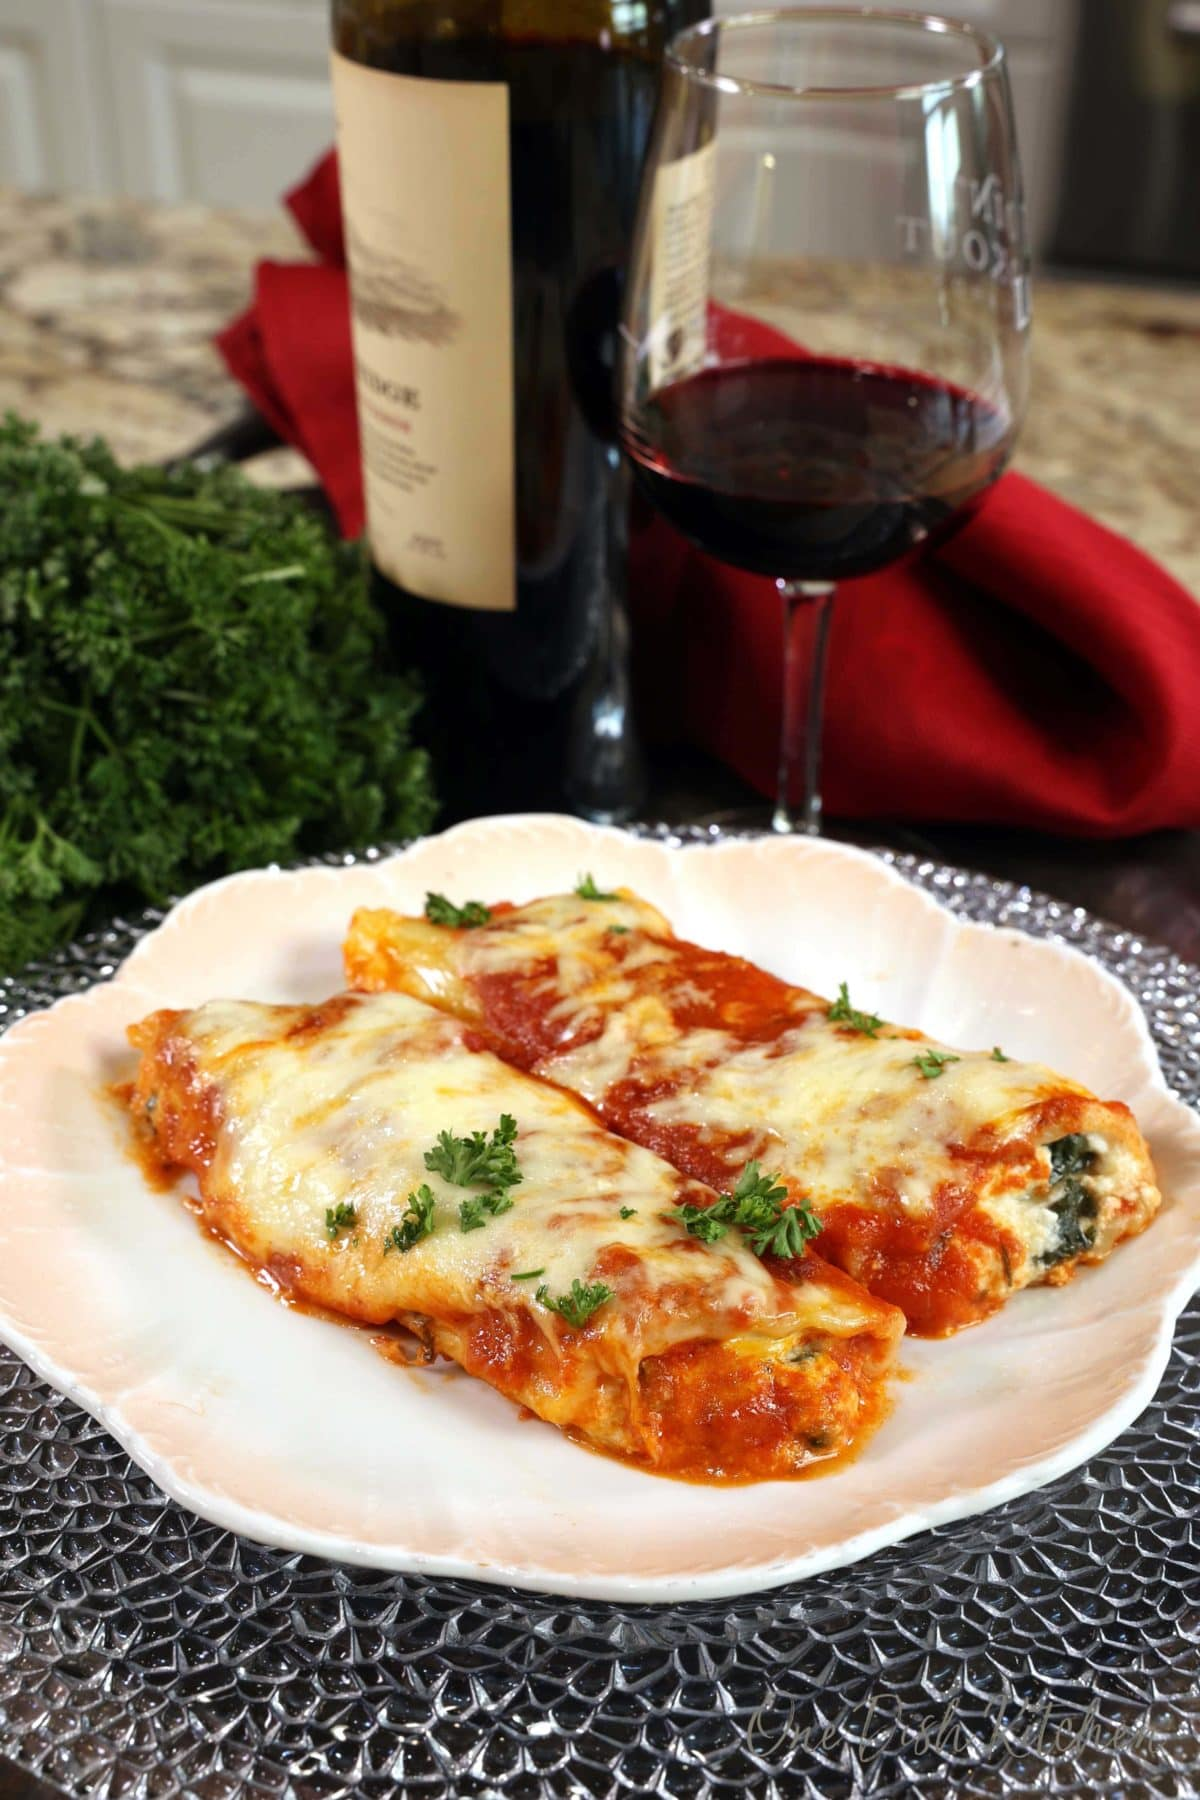 two stuffed manicotti shells on a white plate next to a bottle of red wine